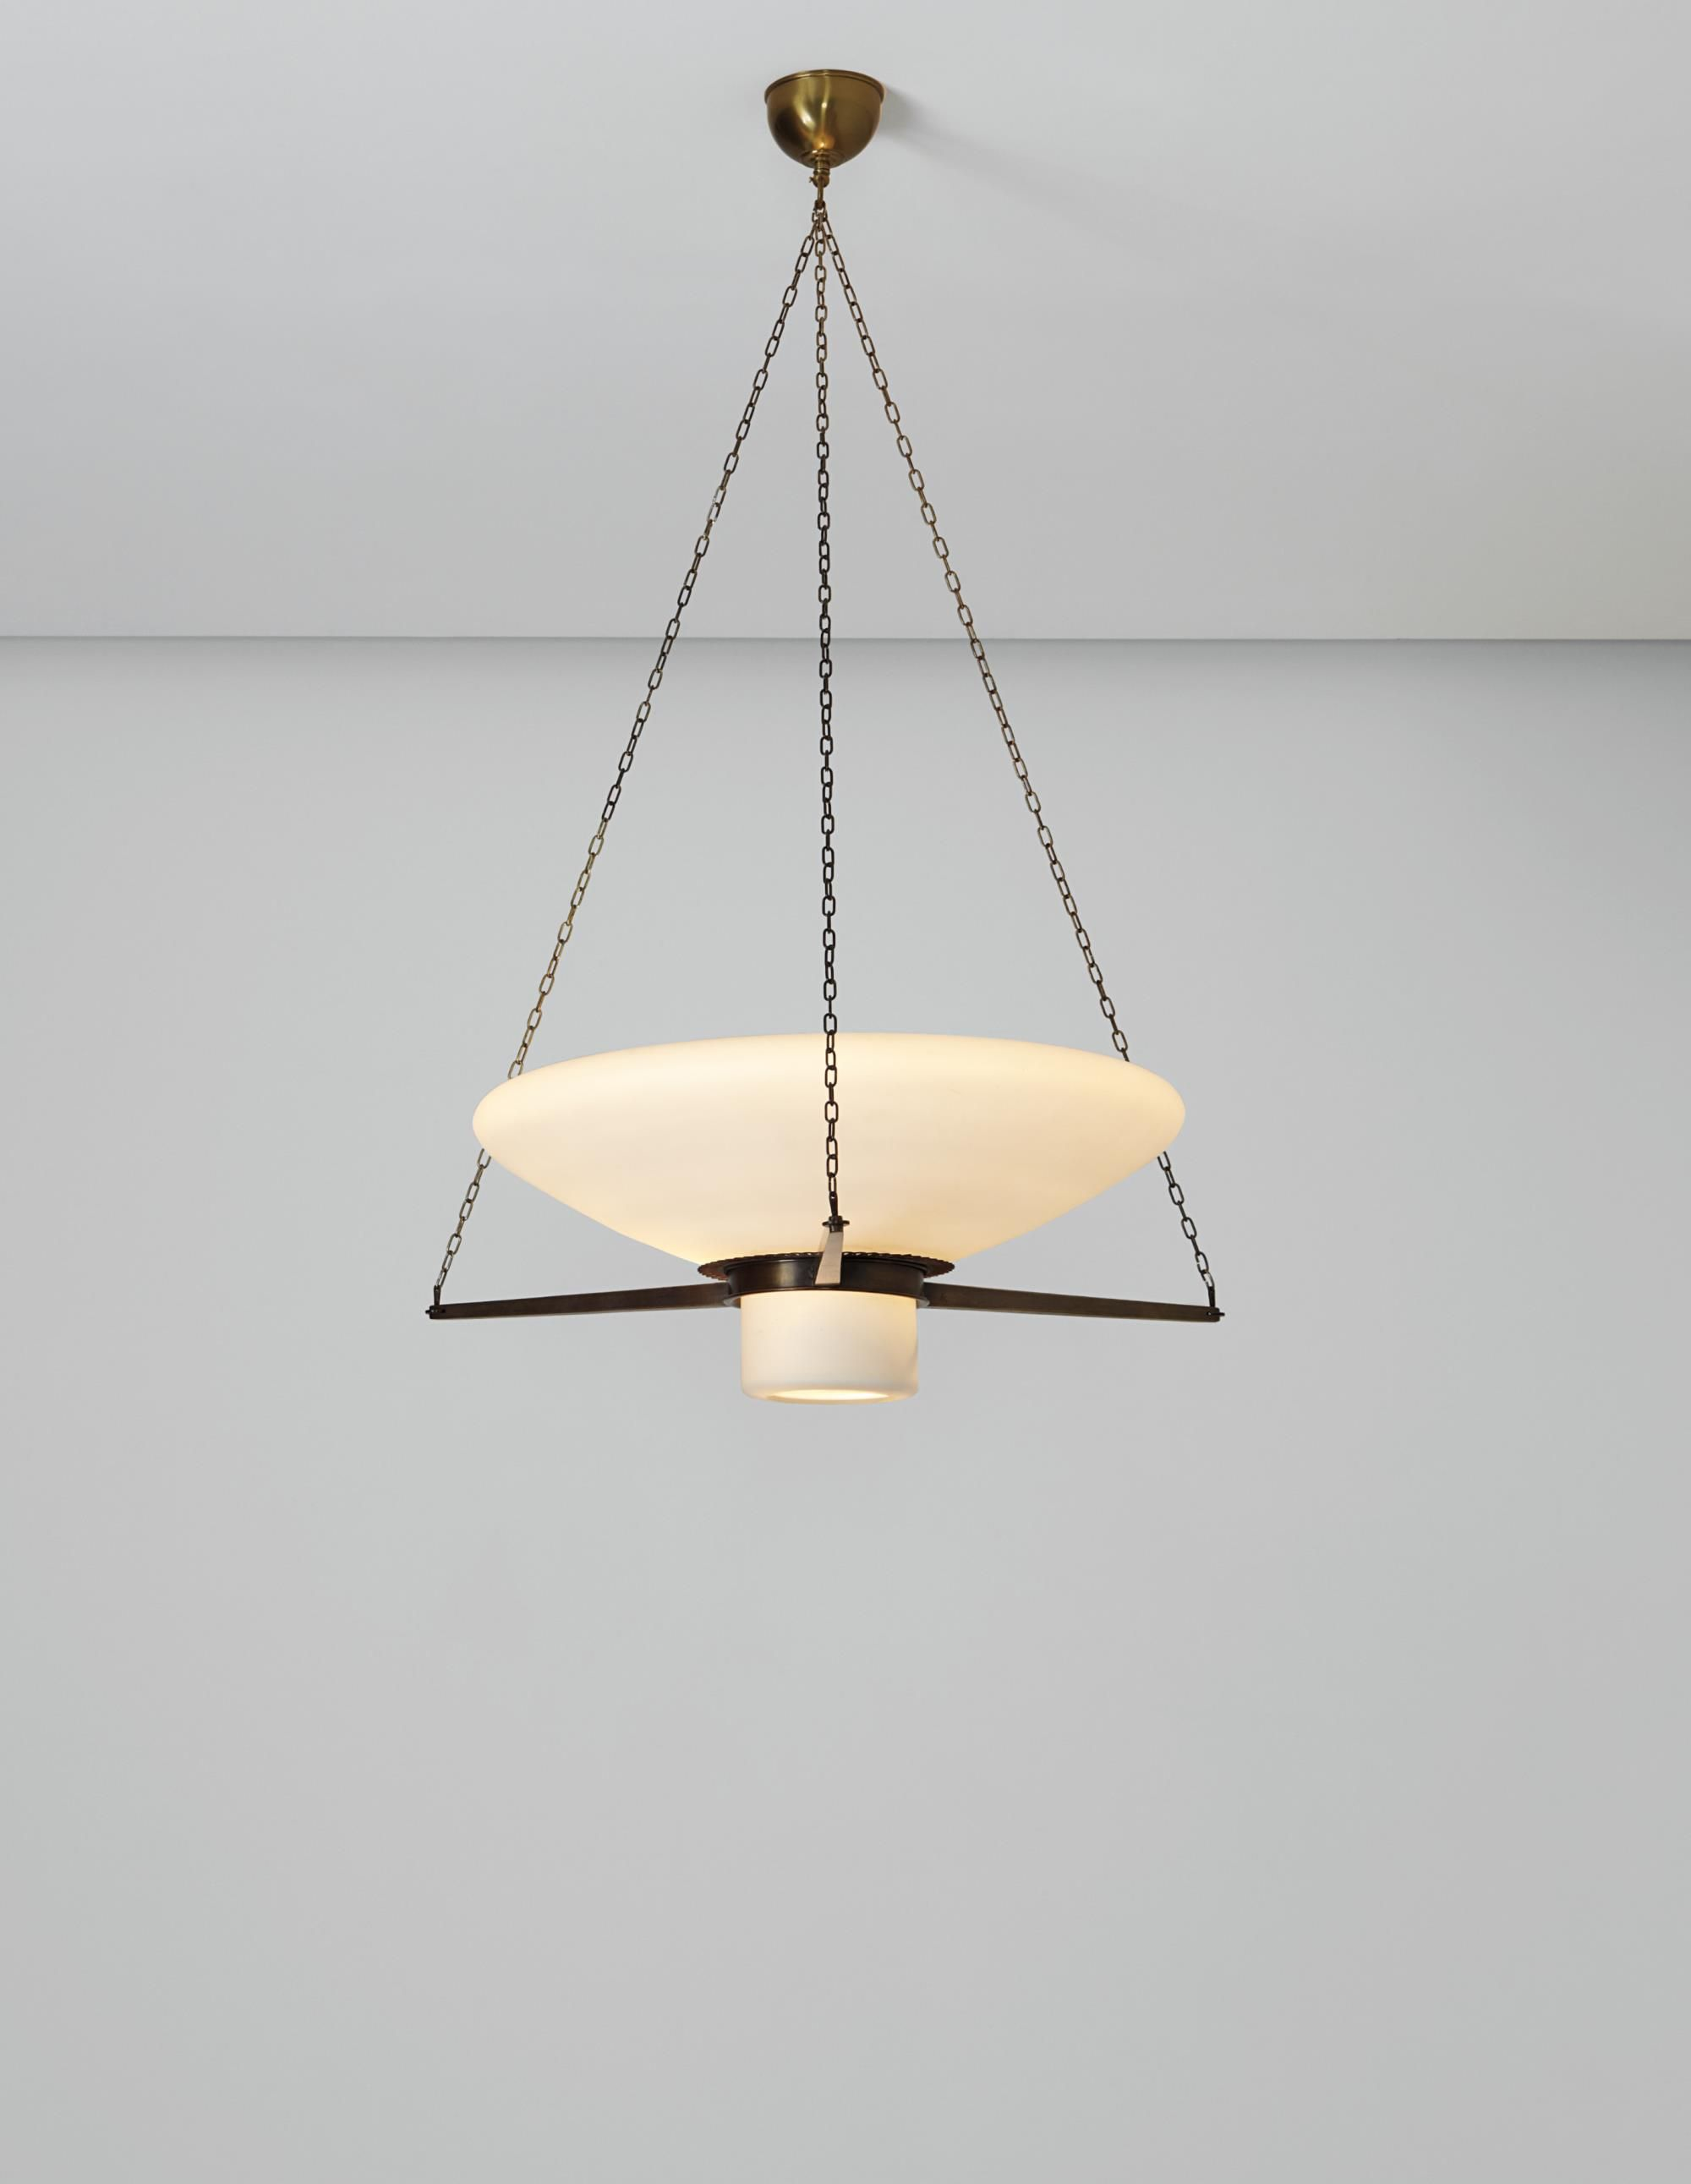 Erik Gunnar Asplund Asplund Ceiling Light, Designed For The Stockholm